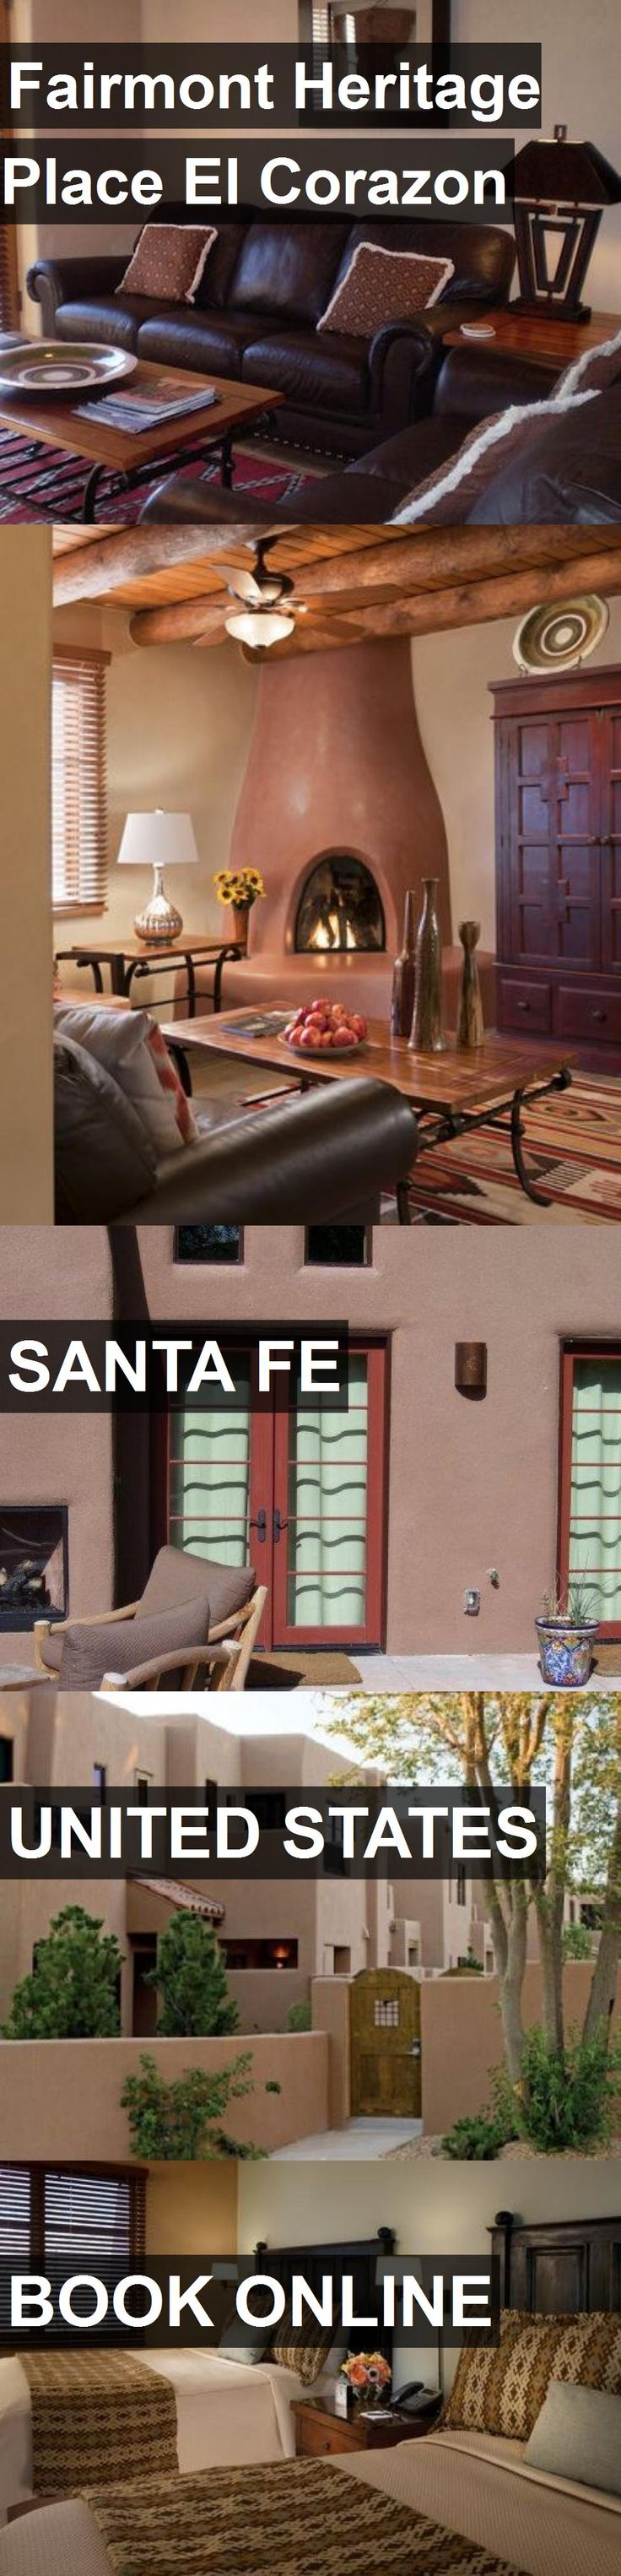 Hotel Fairmont Heritage Place El Corazon in Santa Fe, United States. For more information, photos, reviews and best prices please follow the link. #UnitedStates #SantaFe #travel #vacation #hotel